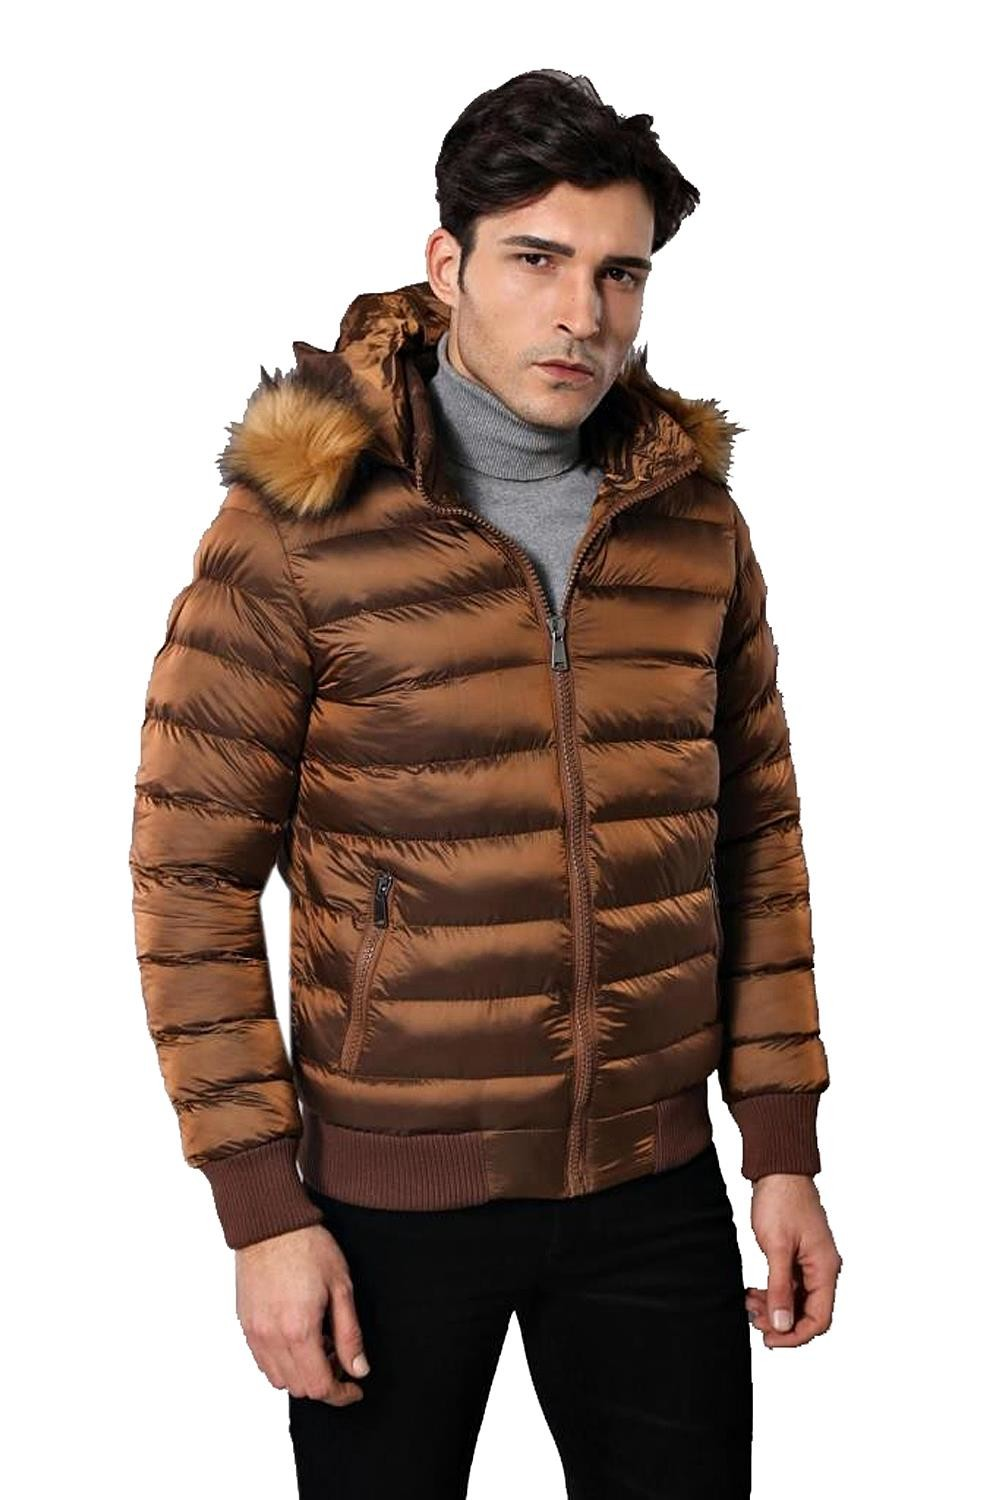 Fur Hooded Men's Puffer Coat in Tan | Wessi